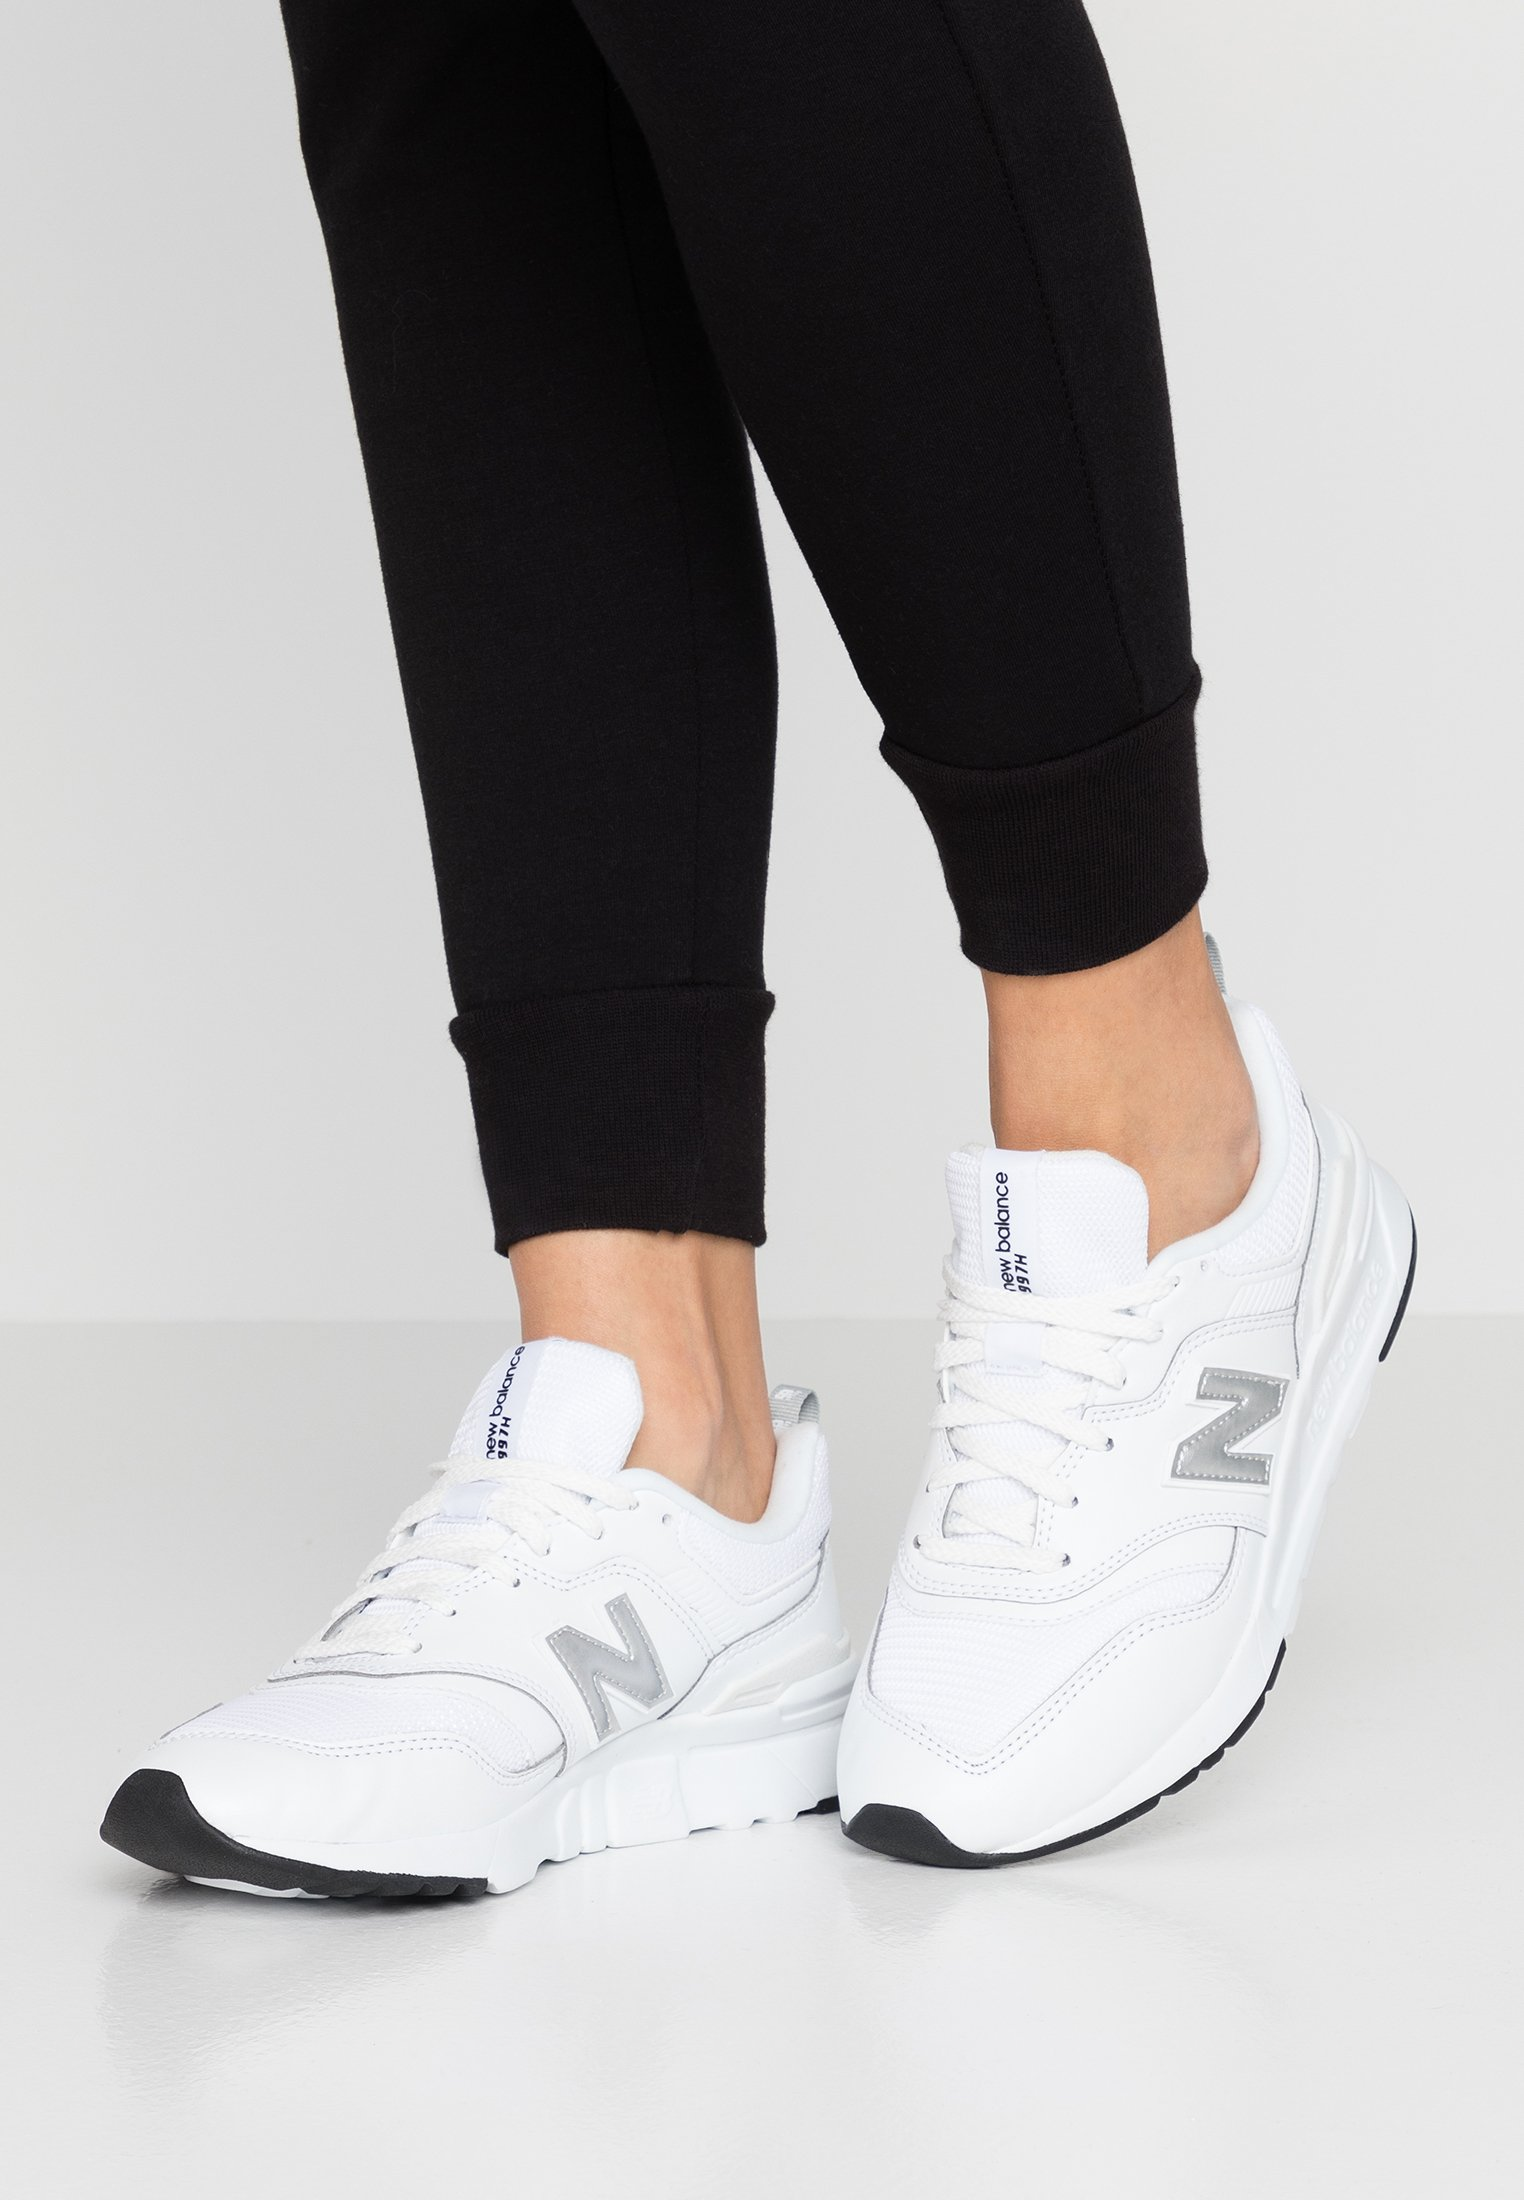 CW997 - Sneakers laag - white/silver